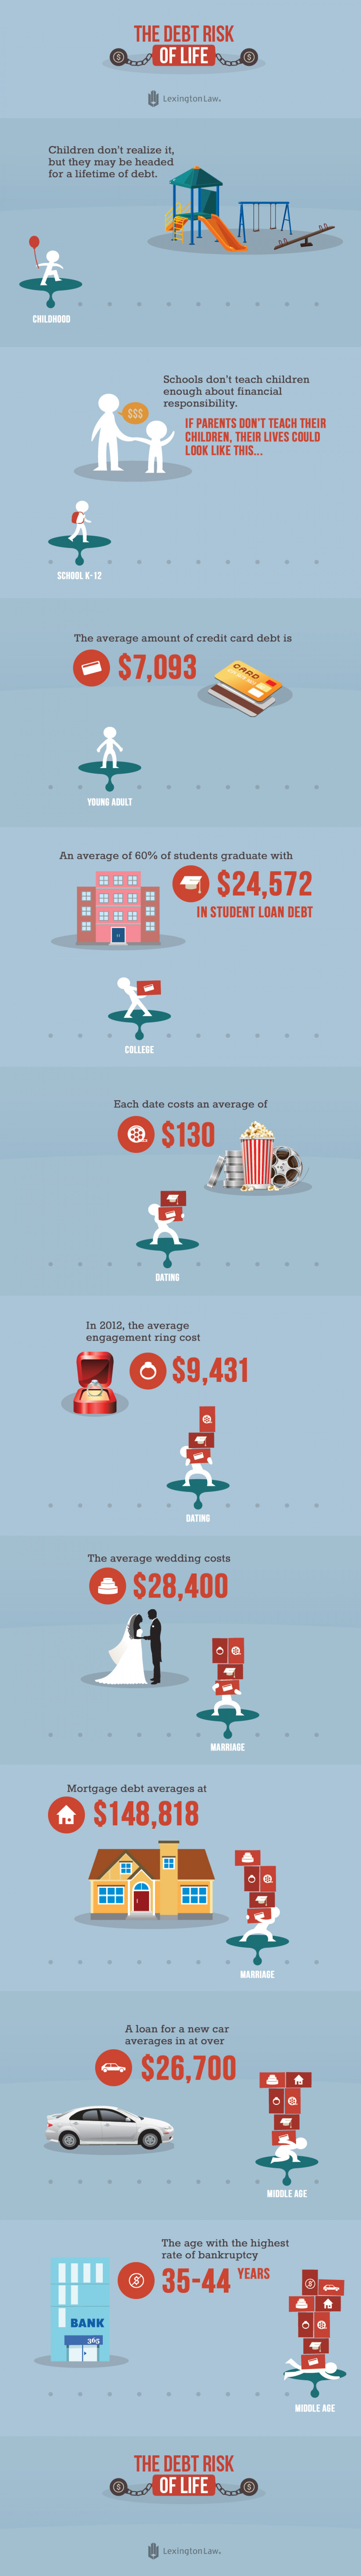 The Debt Risk of Life Infographic